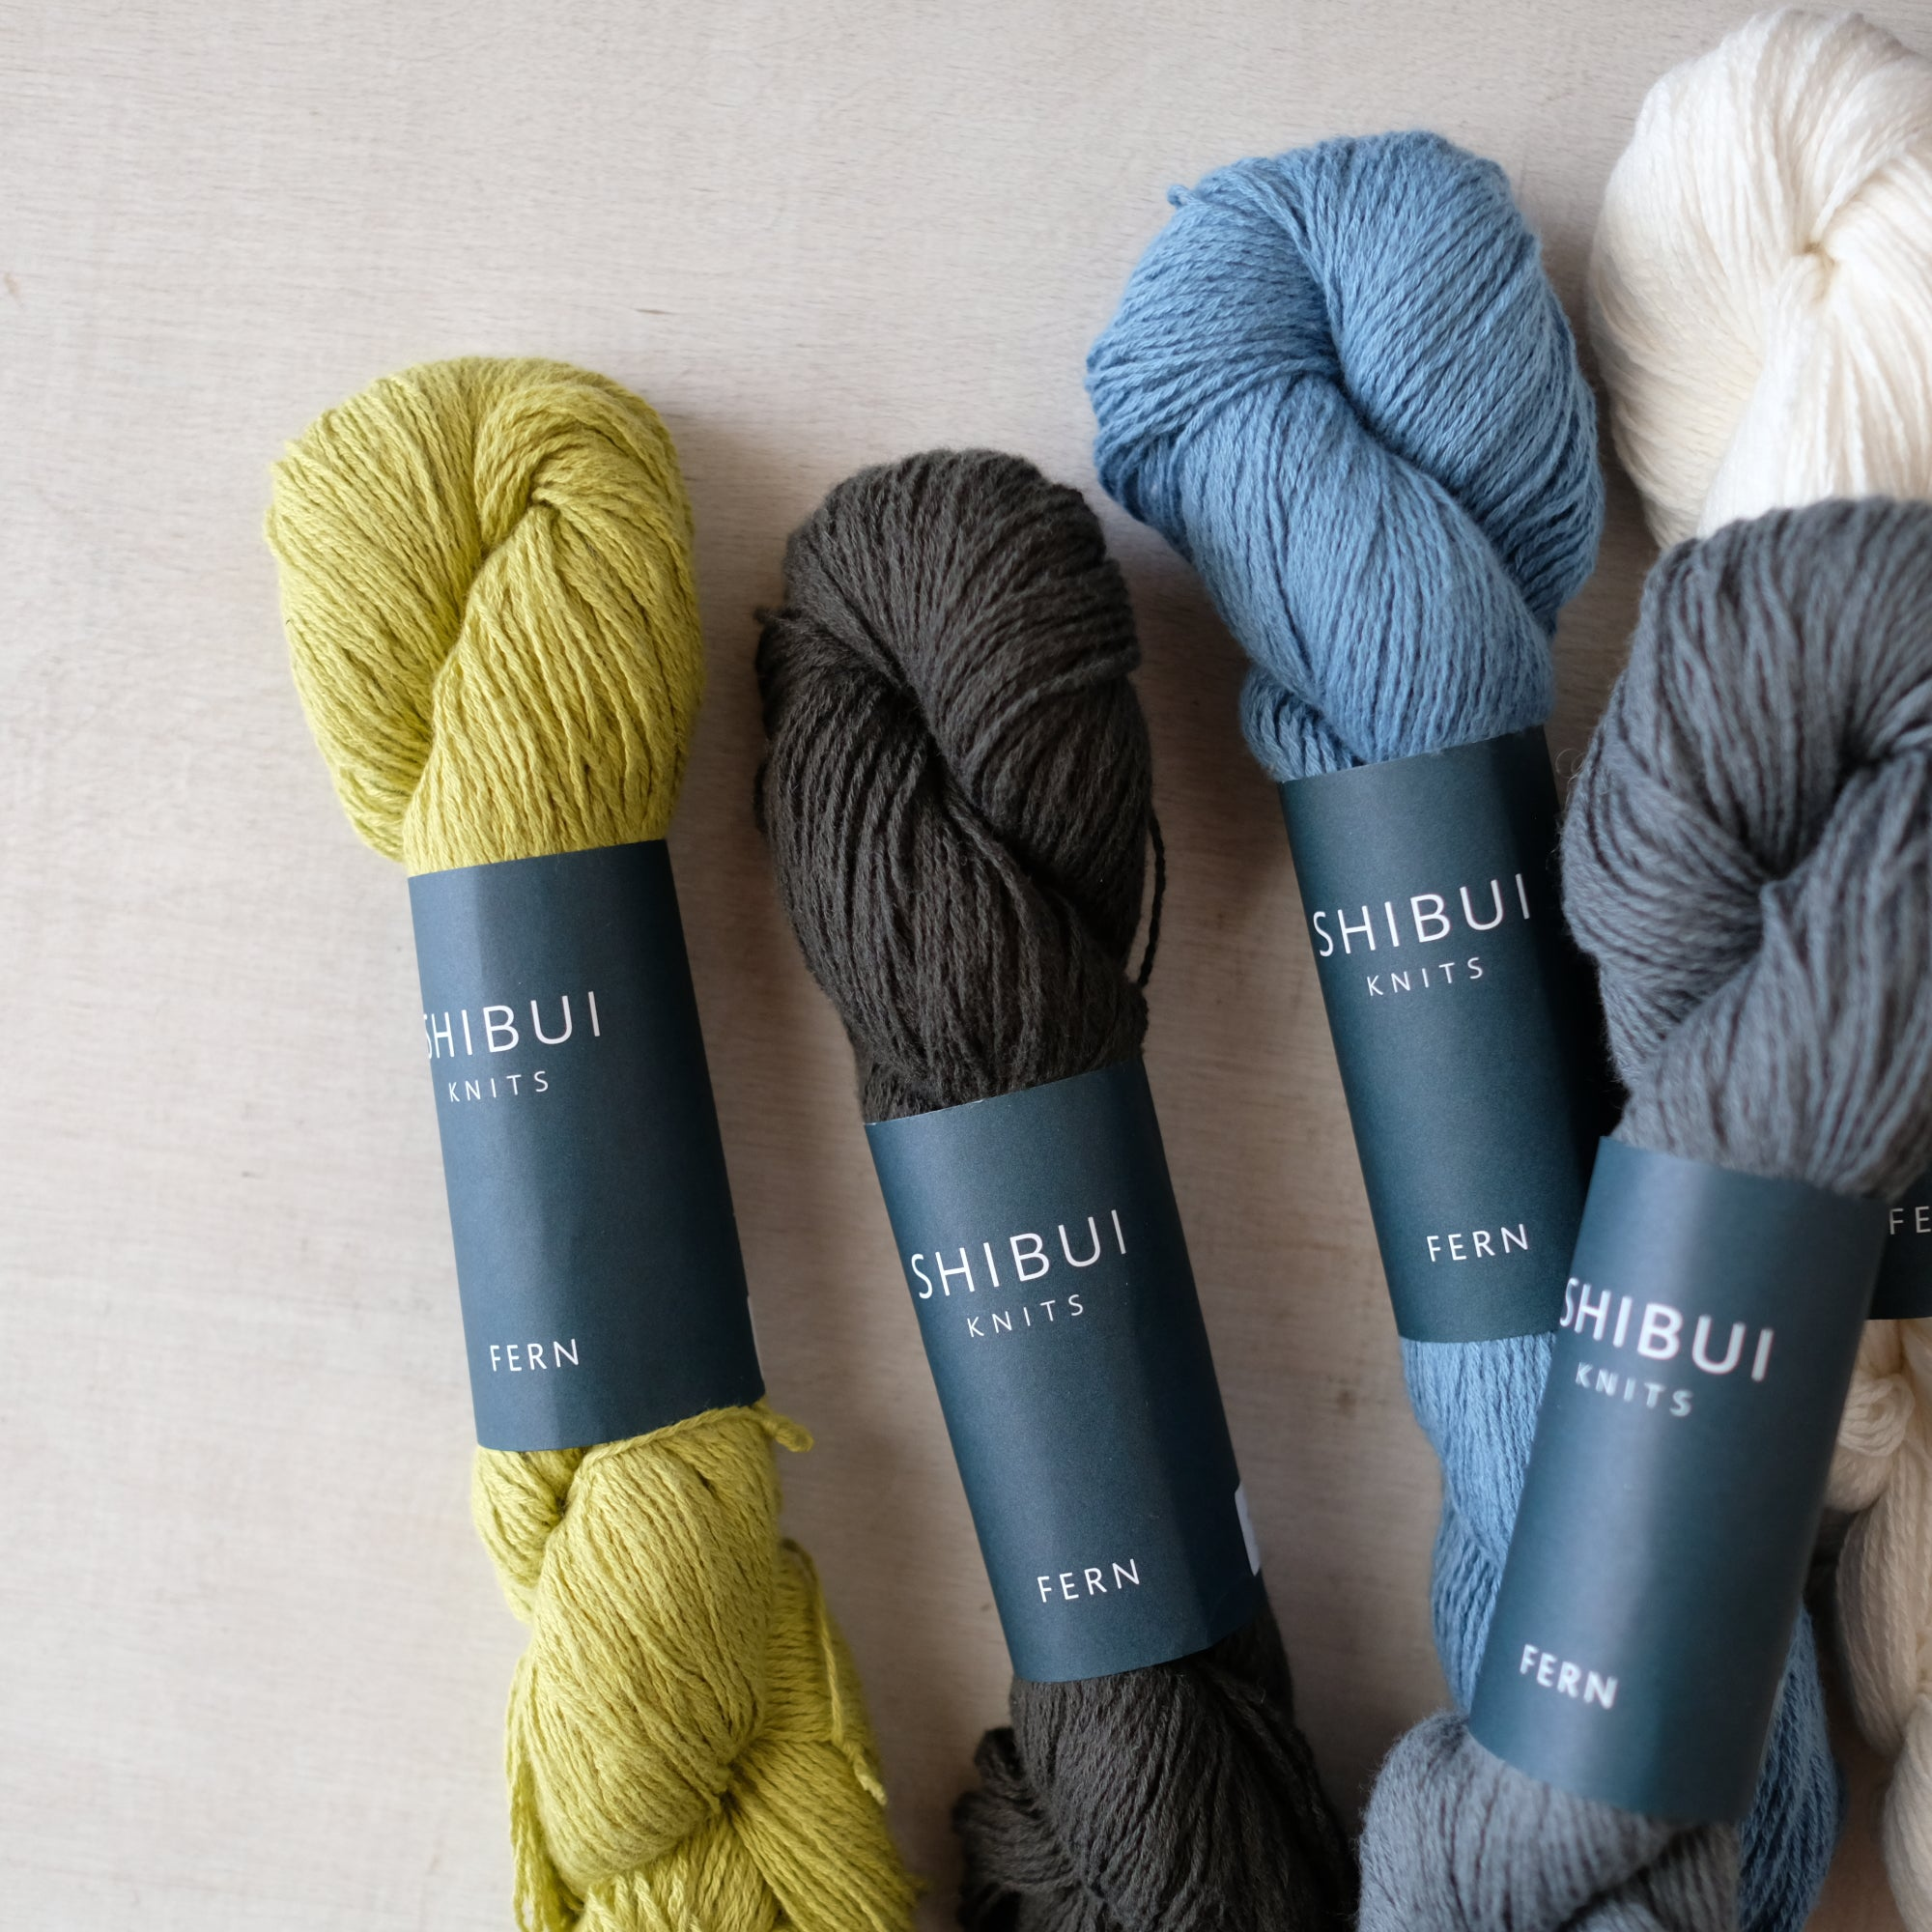 SALE - Shibui - Fern - 30% off